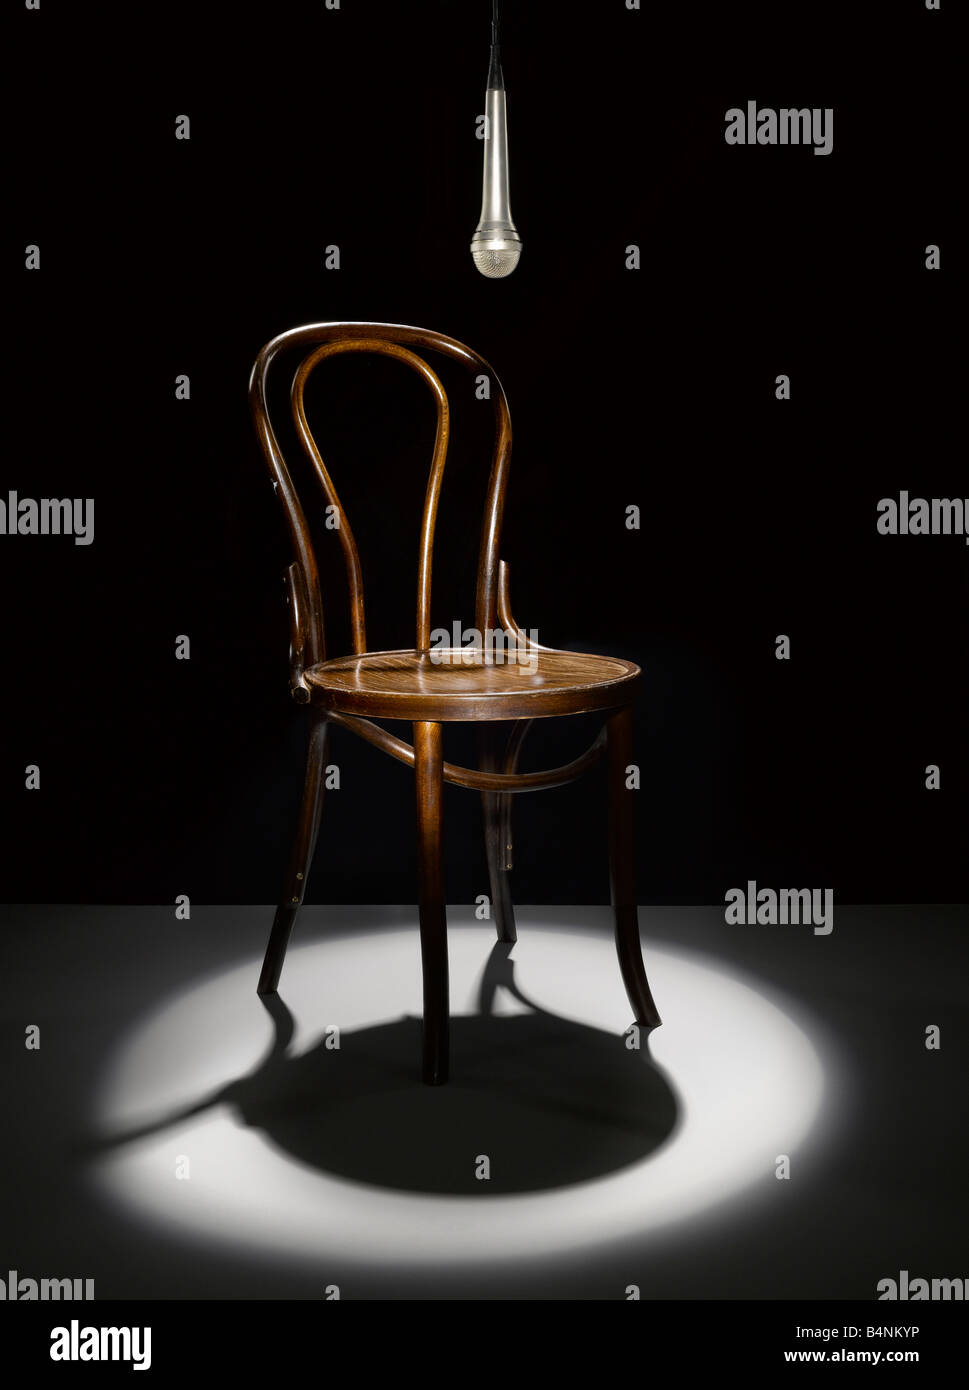 A wooden chair and microphone in the spotlight - Stock Image